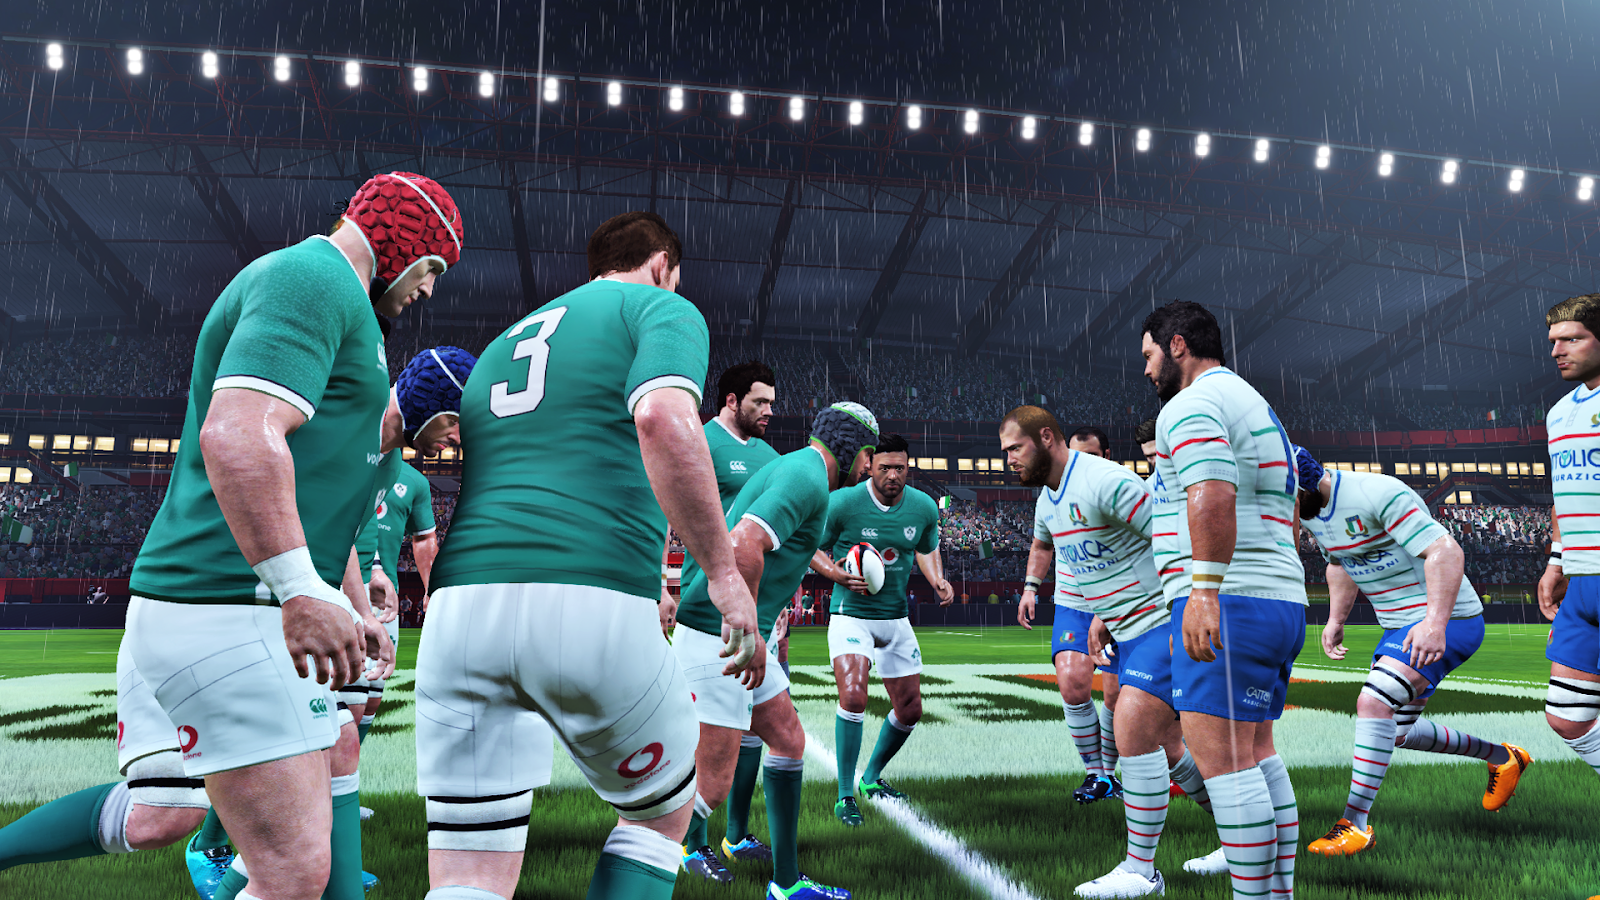 Harpin On Rugby Rugby 20 Video Game Our Beta Test Review